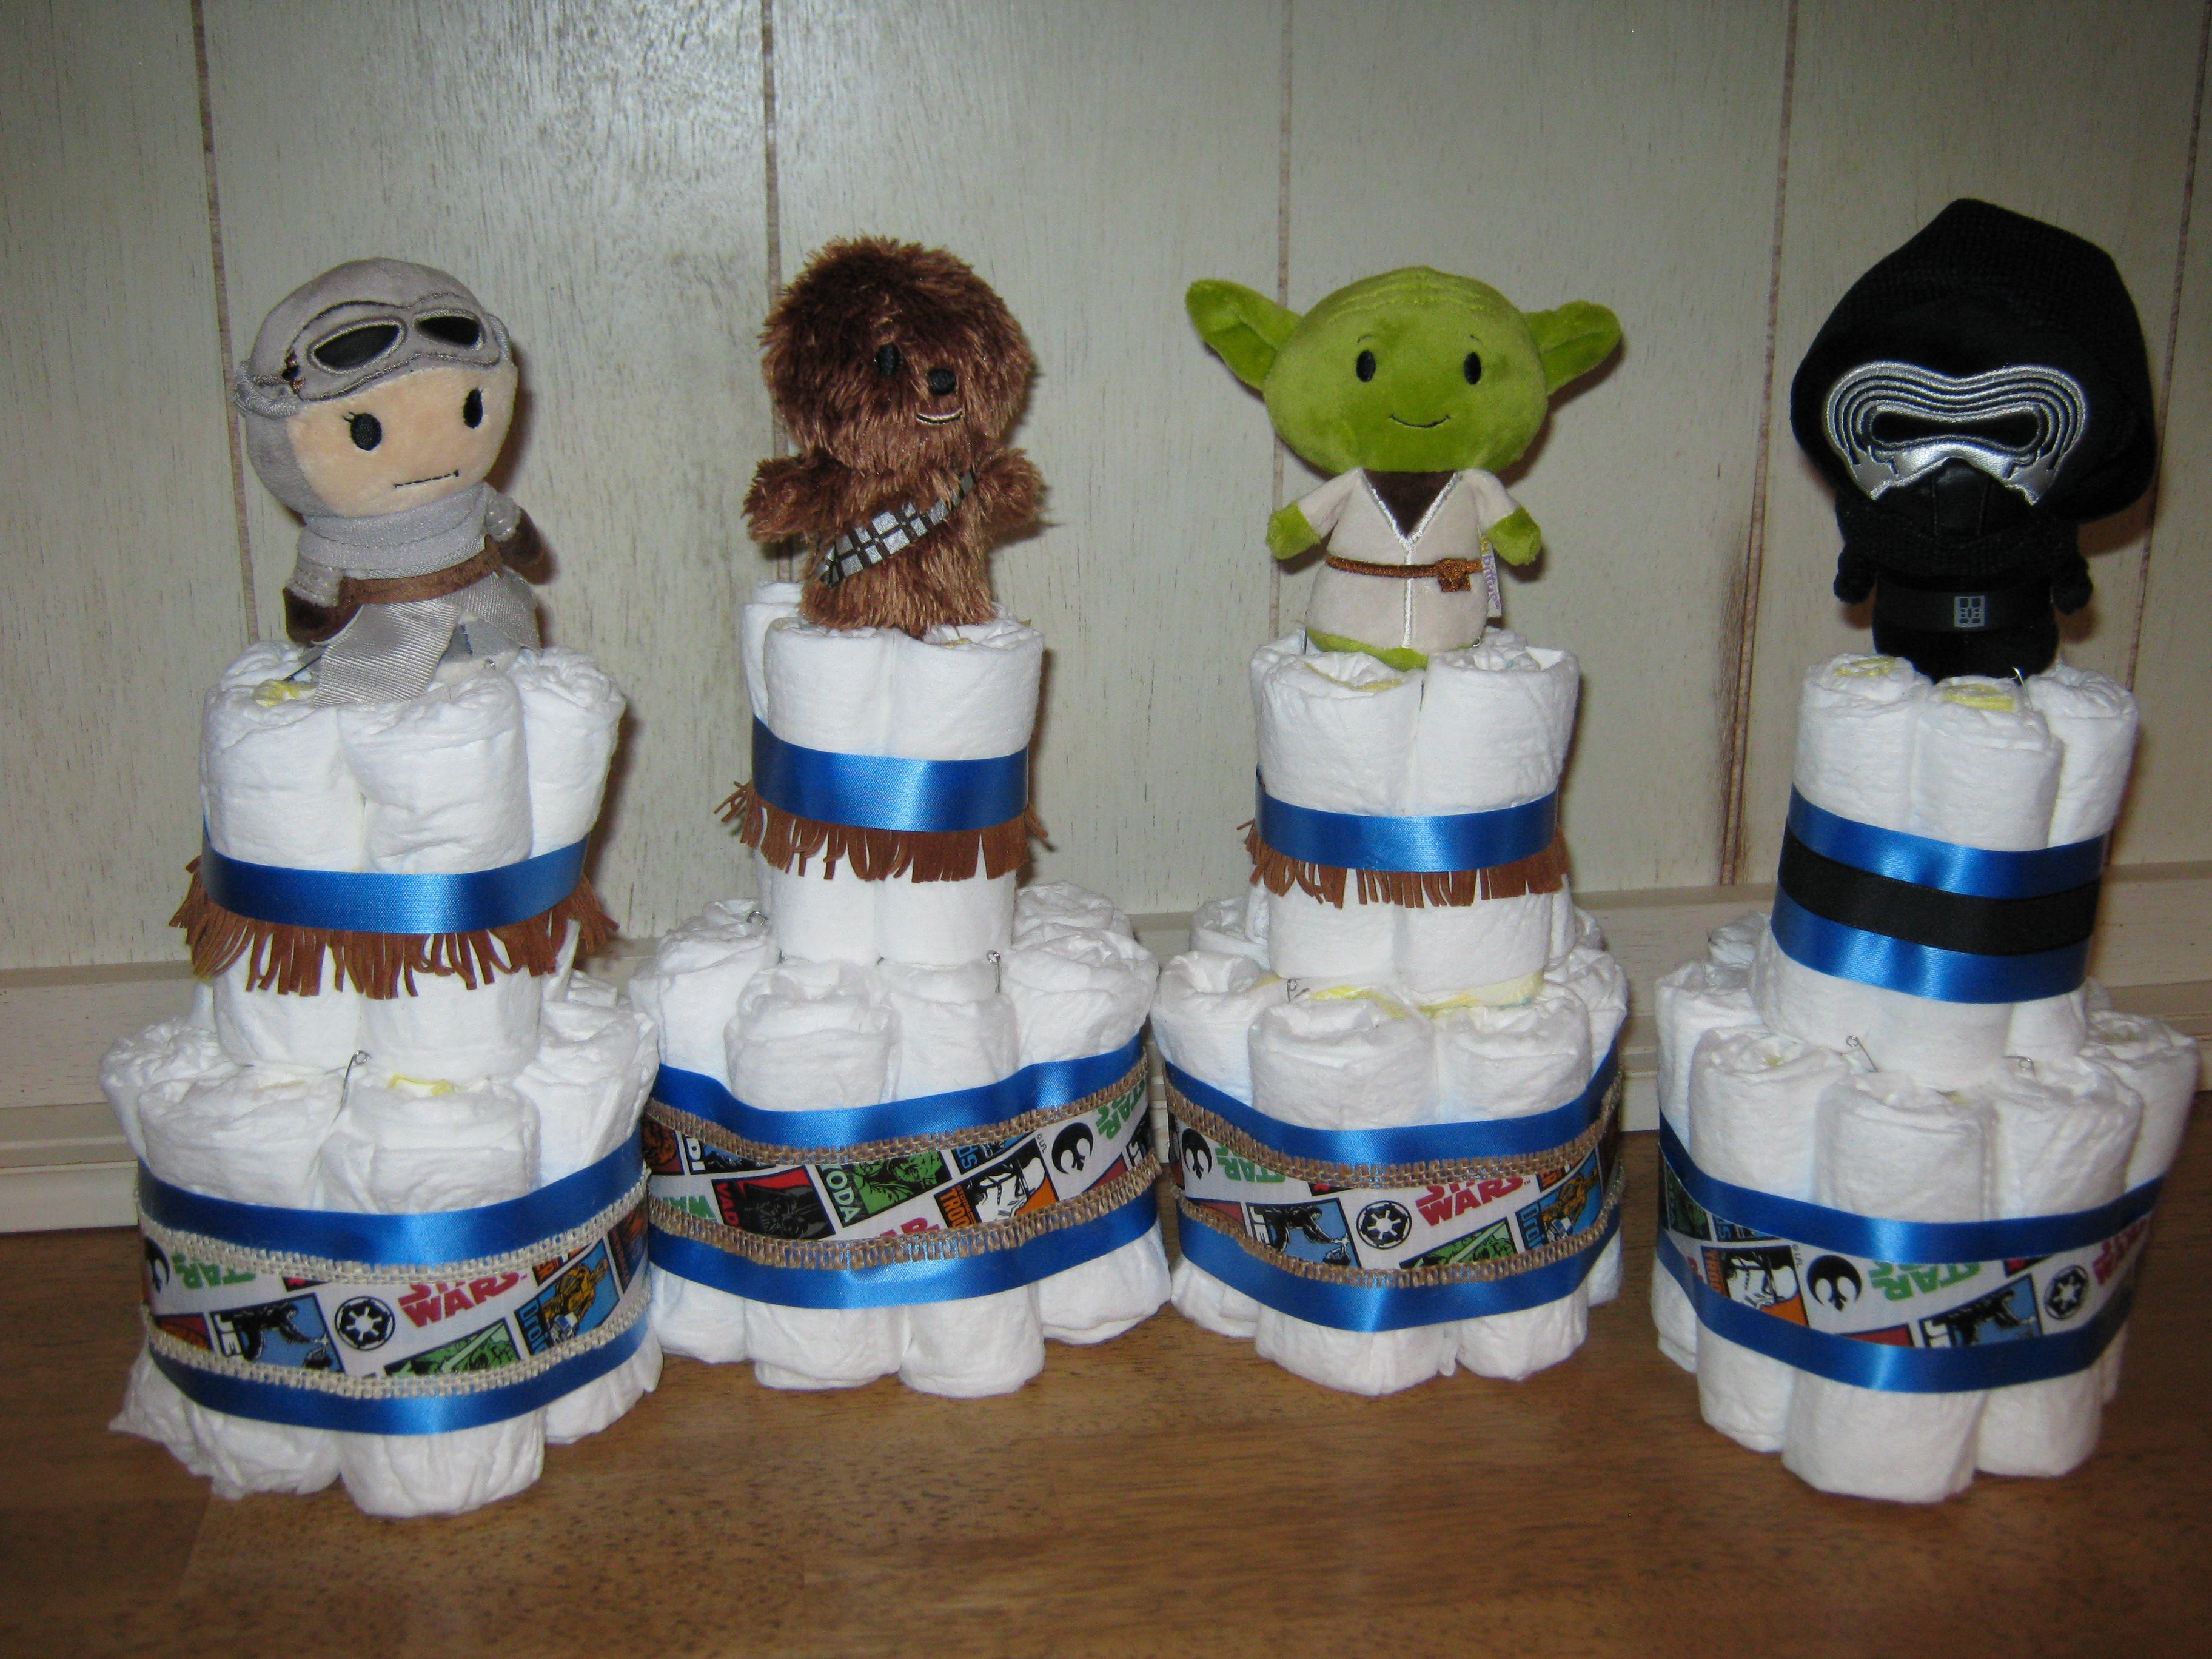 Star Wars Diaper cakes for baby shower made with Hallmark Itty